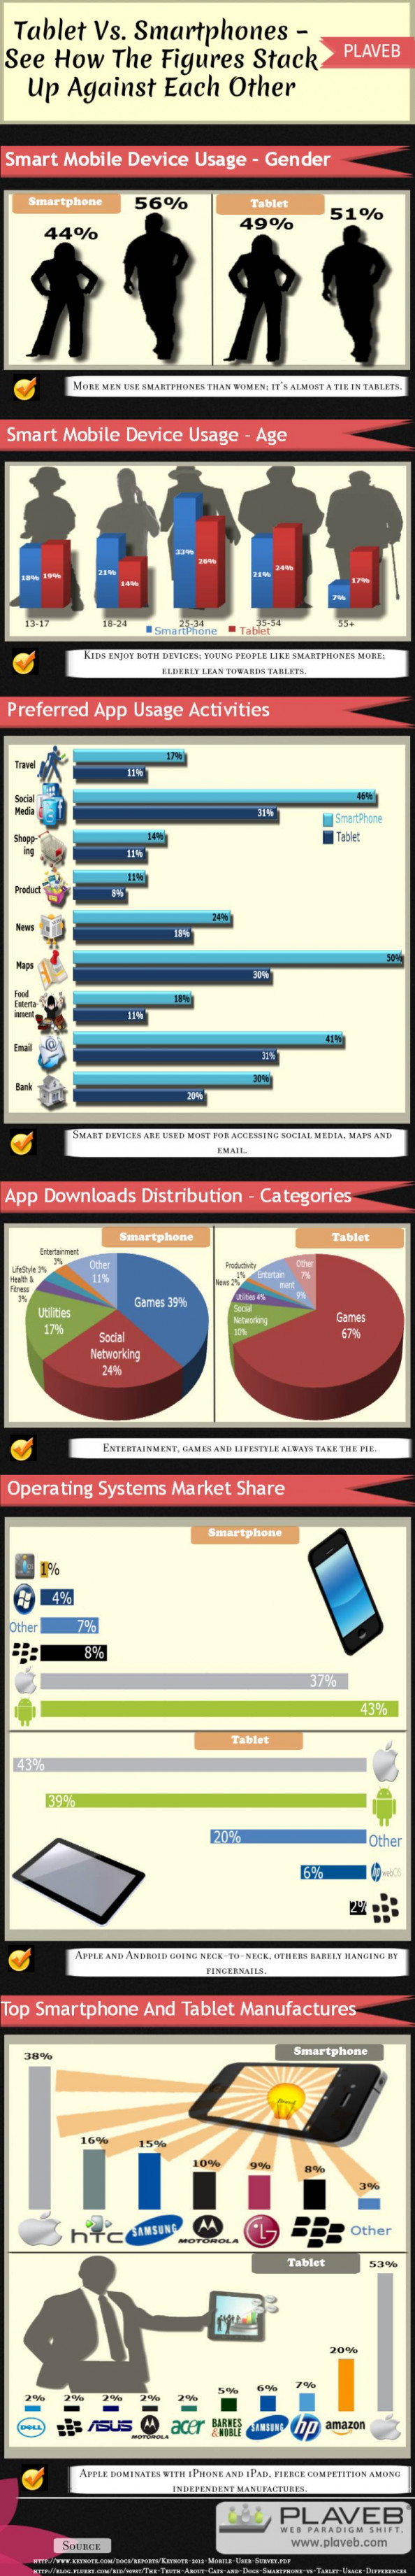 Tablet Vs. Smartphones – See how the figures stack up against each other !! INFOGRAPHIC Infographic